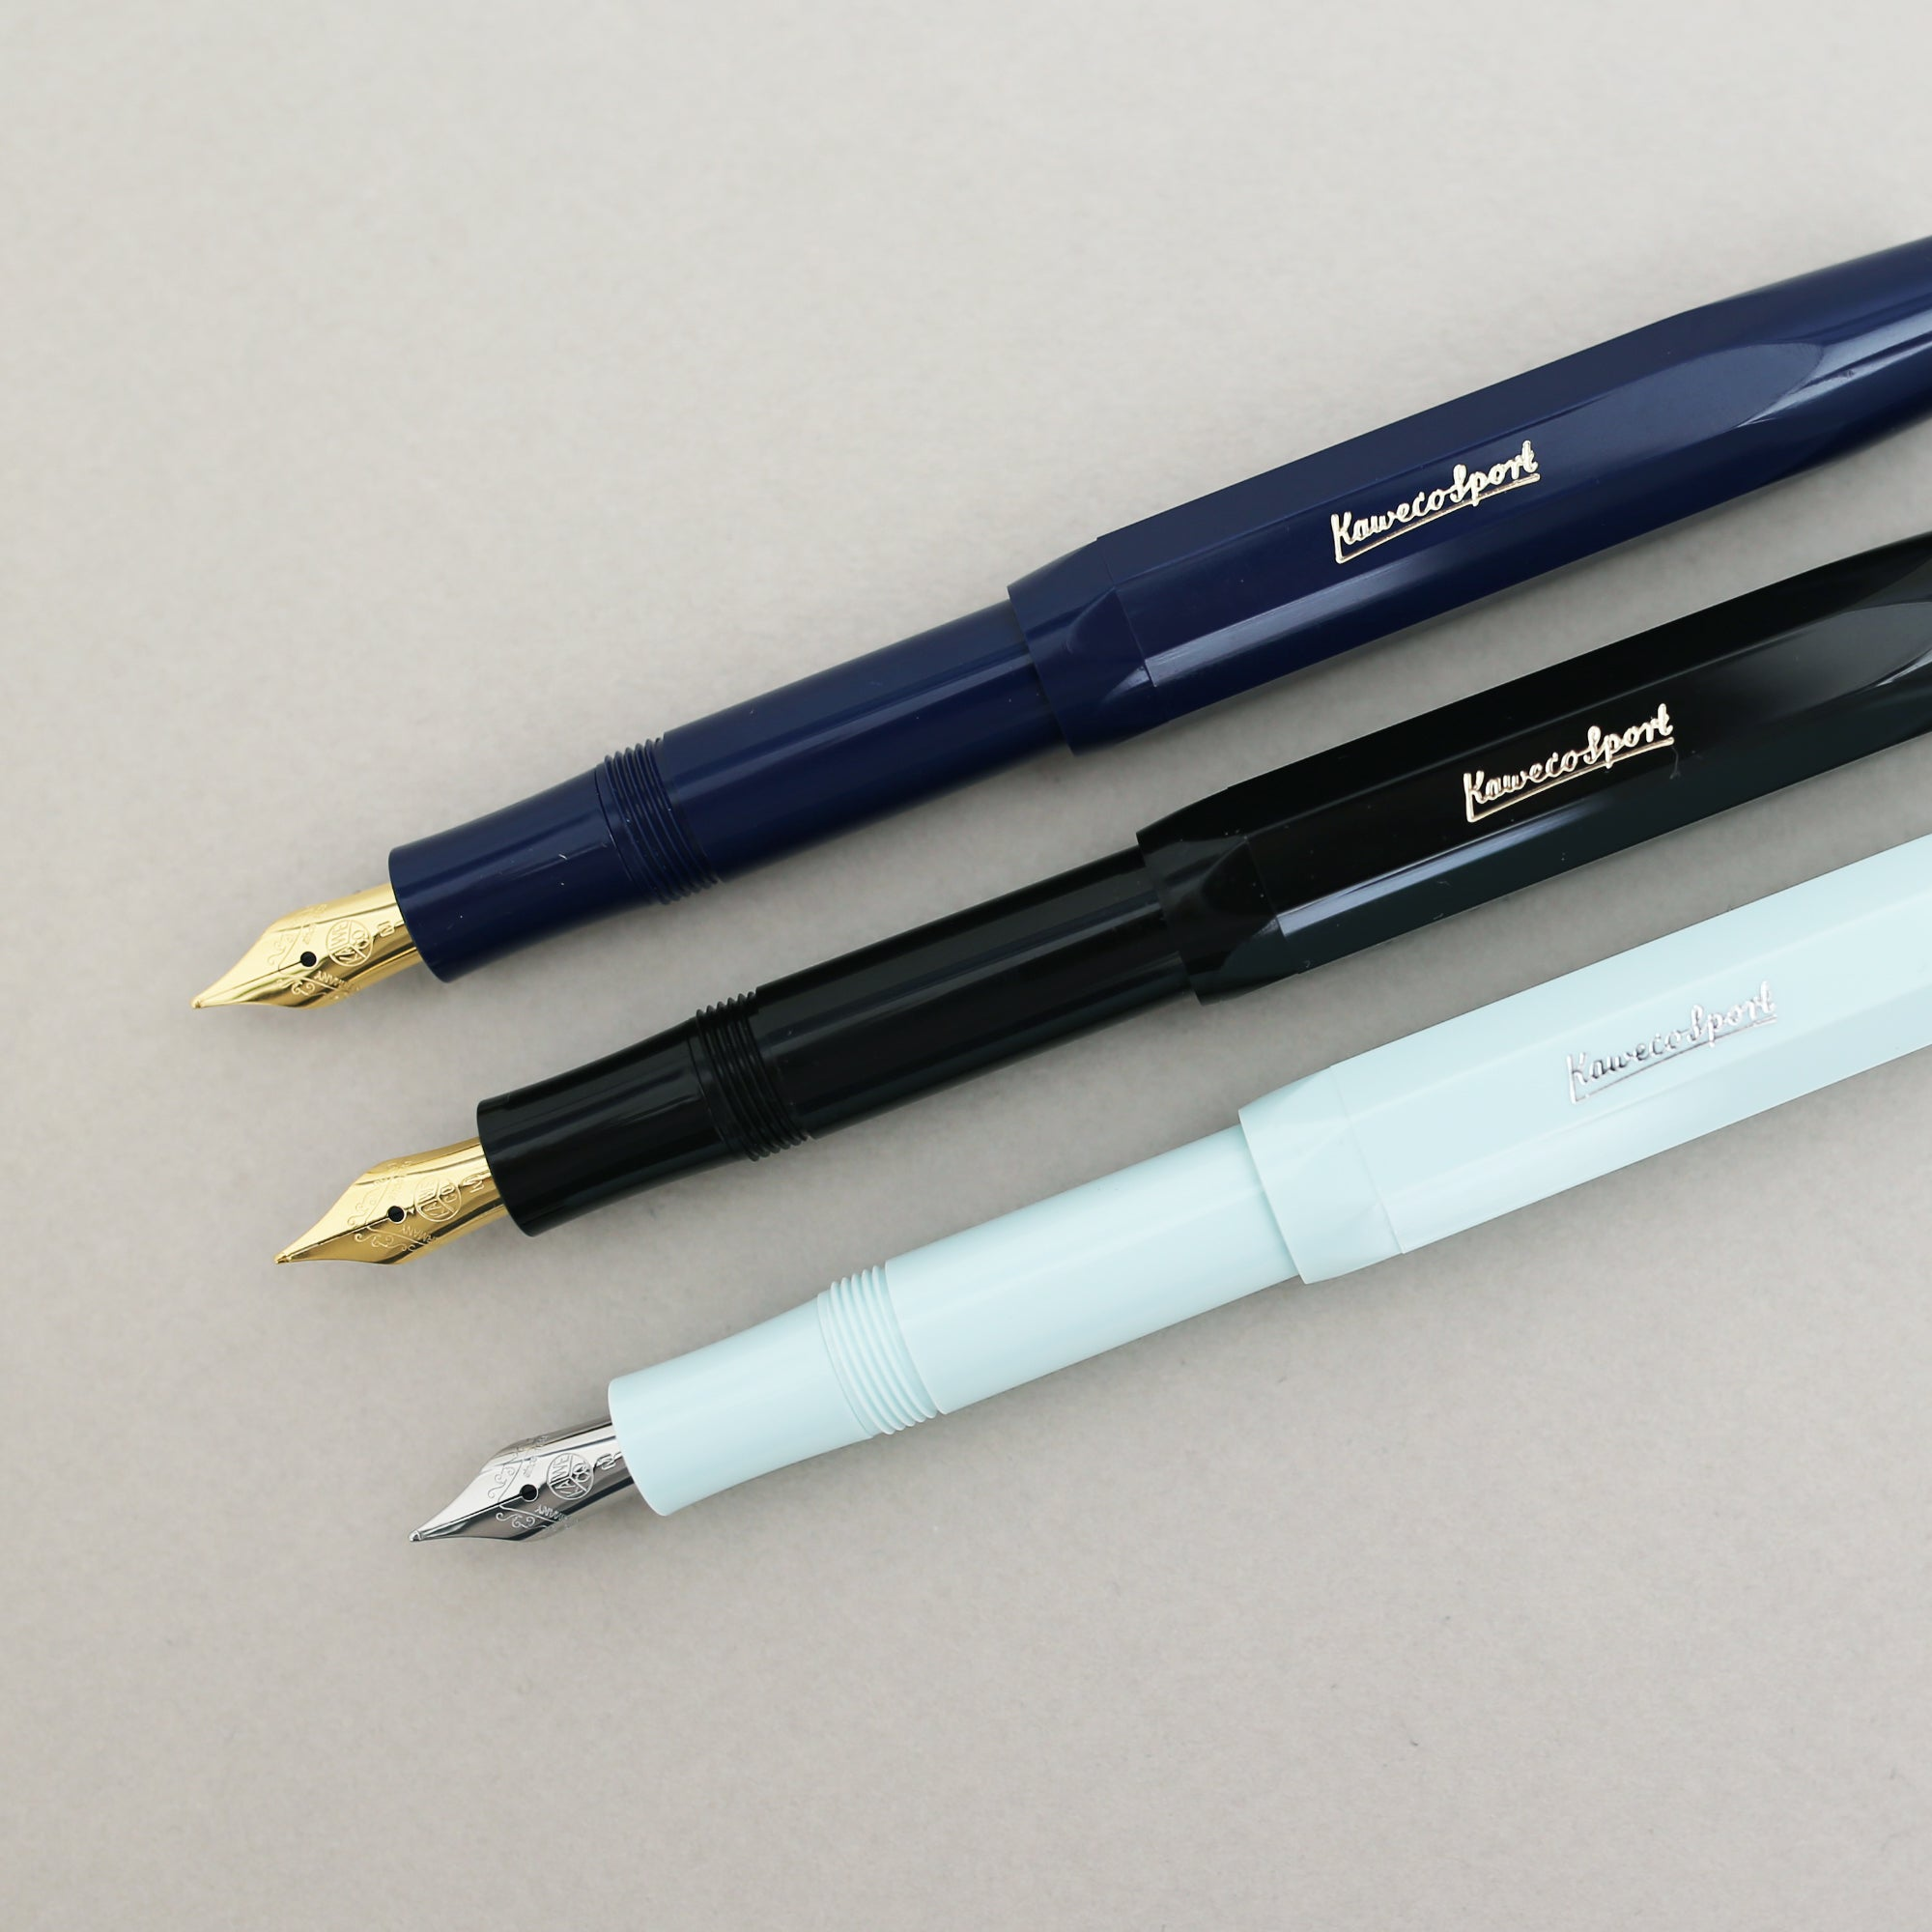 products/KAWECO_CLASSIC_SPORT_FOUNTAIN_PEN_M____BLACK_02_c15497a6-341e-4a53-befd-db6f4fc3e5fc.jpg